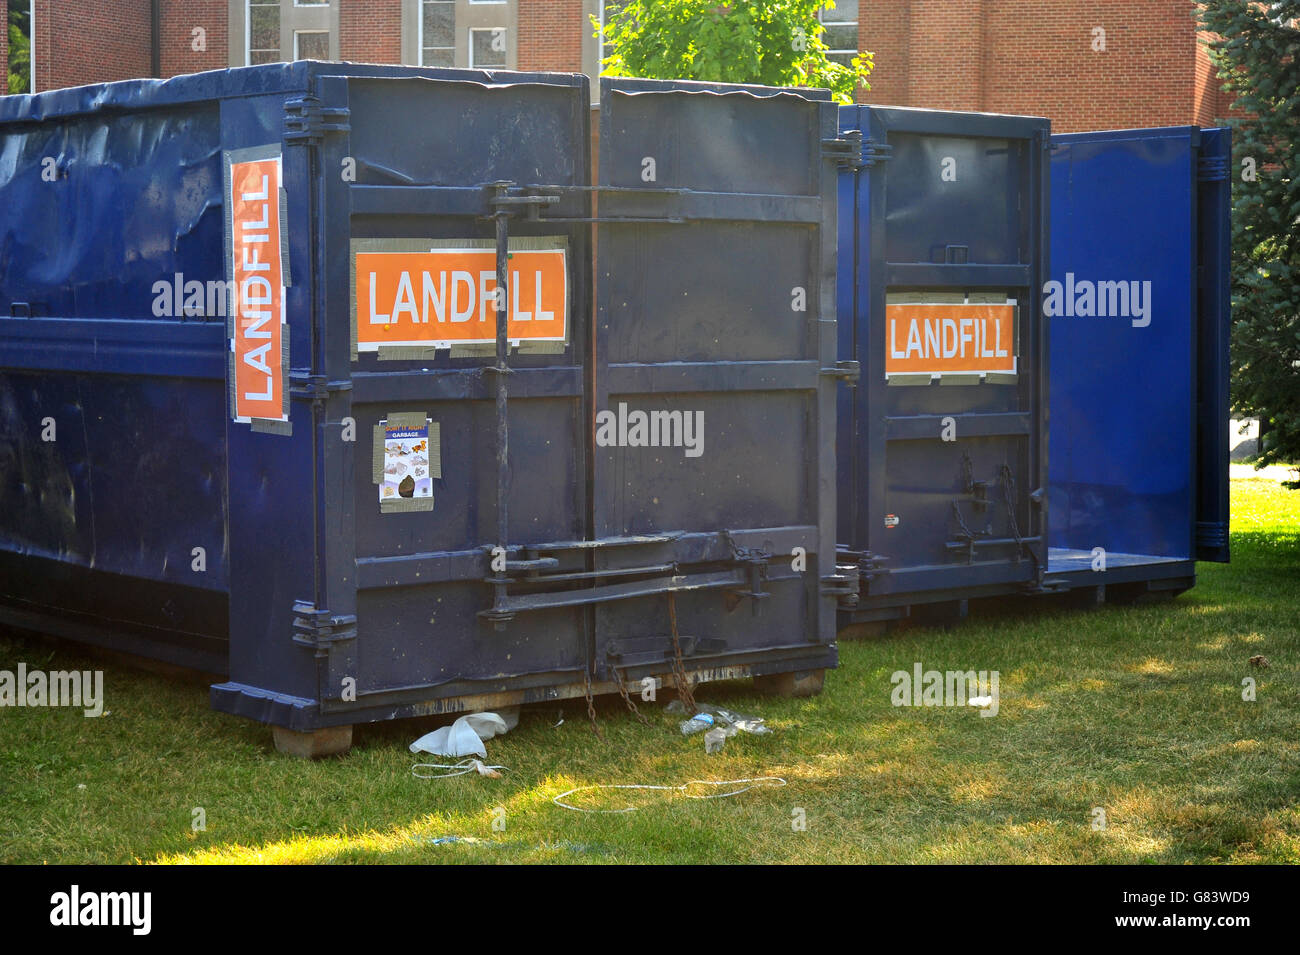 Two large landfill containers placed at the side of a city festival in London Ontario. - Stock Image